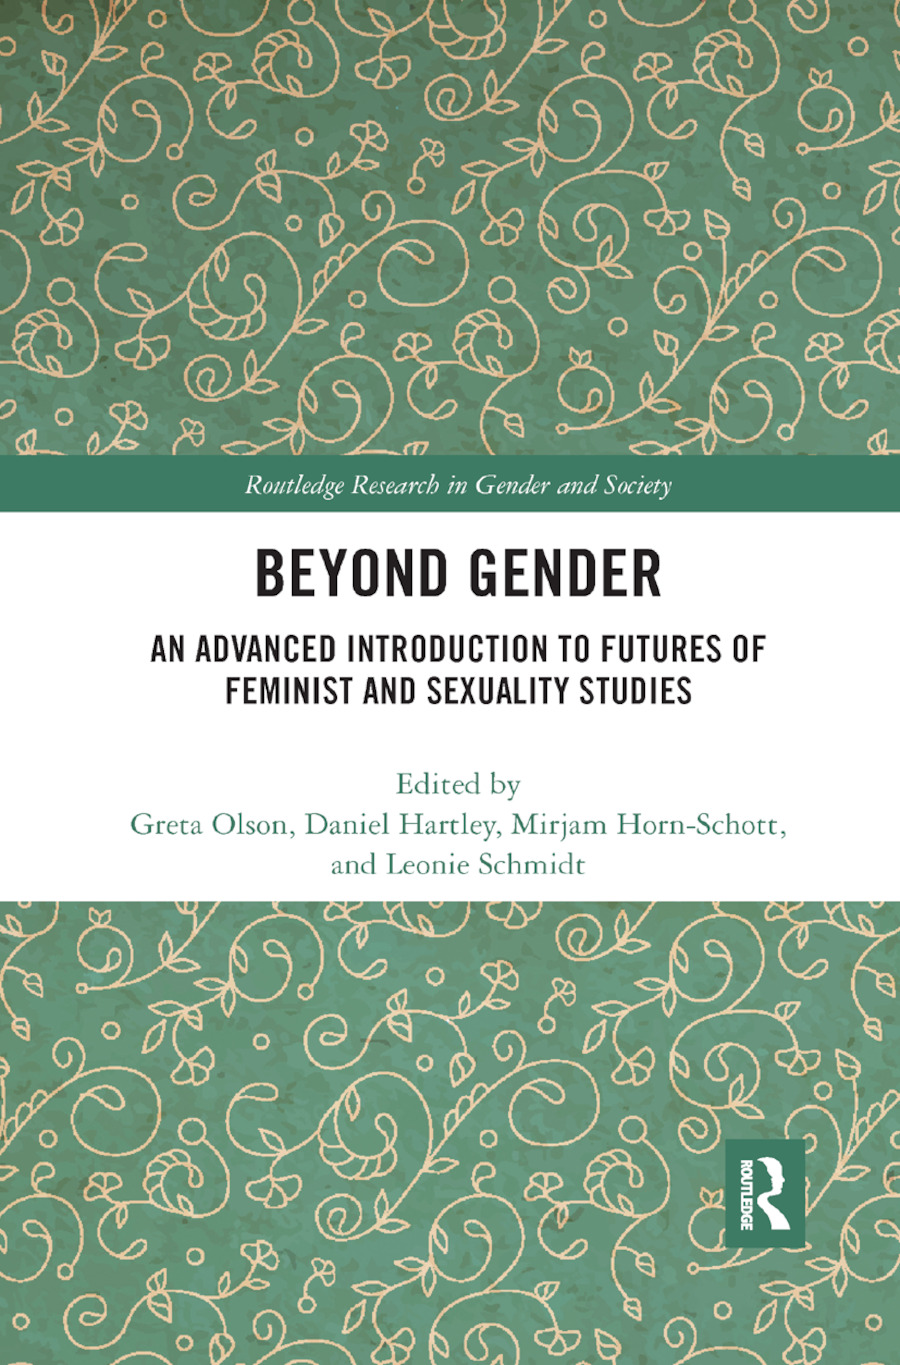 Beyond Gender: An Advanced Introduction to Futures of Feminist and Sexuality Studies book cover